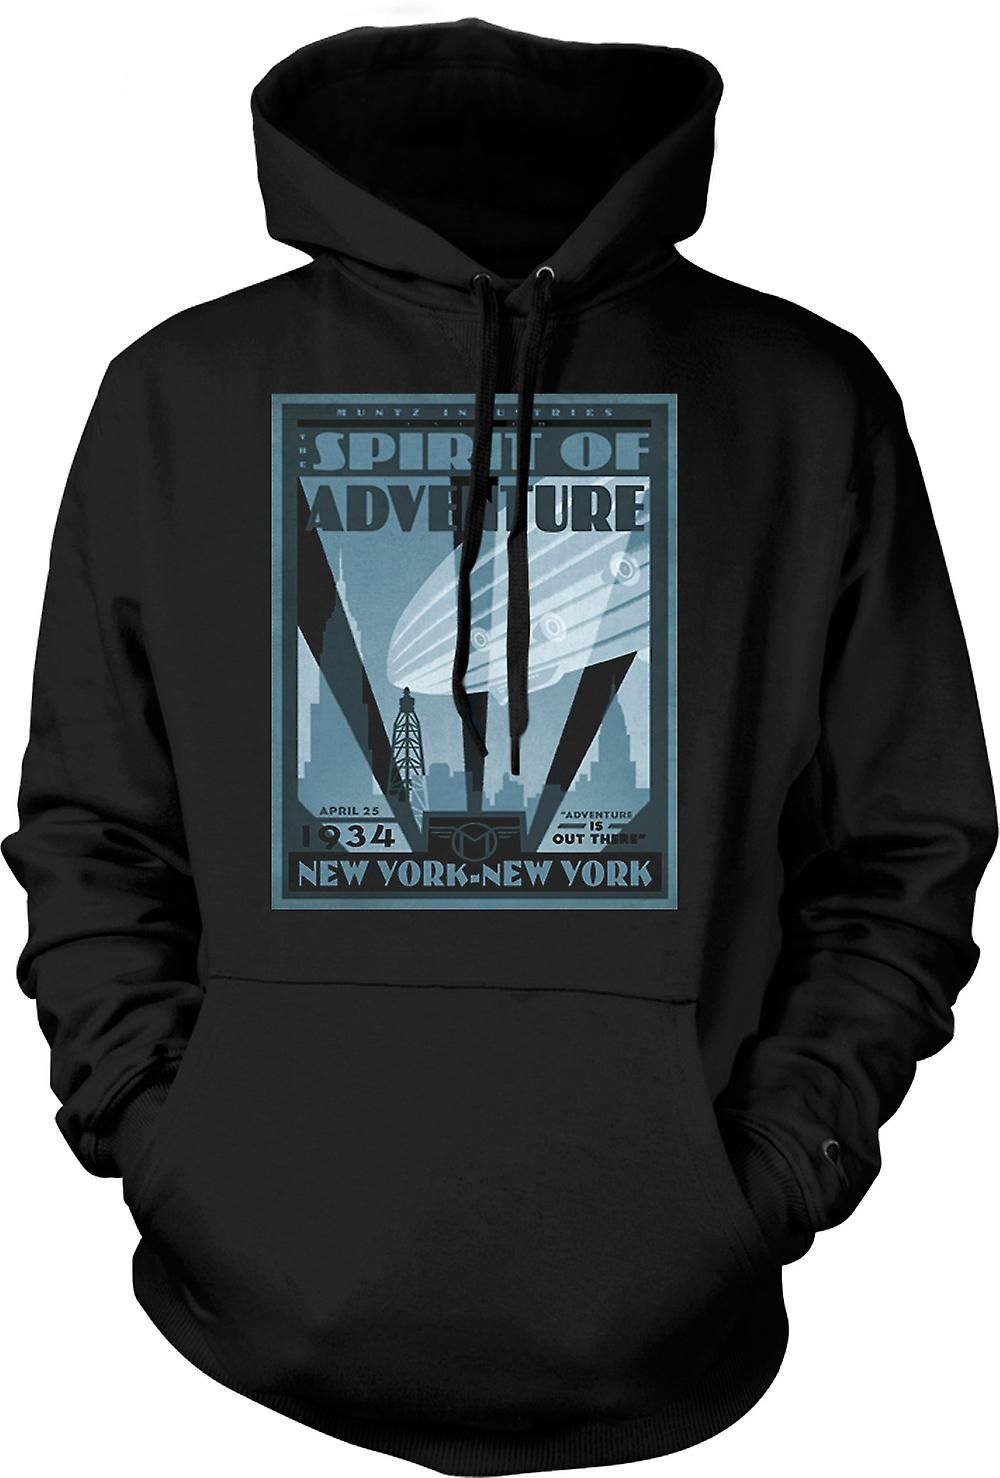 Mens-Hoodie - Muntzs Industries New York - Cool